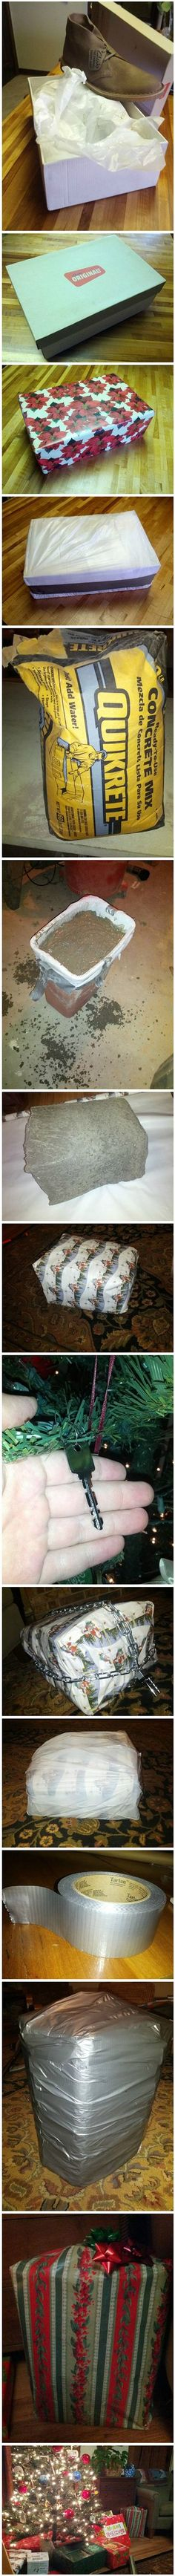 Funny Pictures - How to Properly Wrap a Present This is how your presents will be wrapped from now on @Thomas Shirley